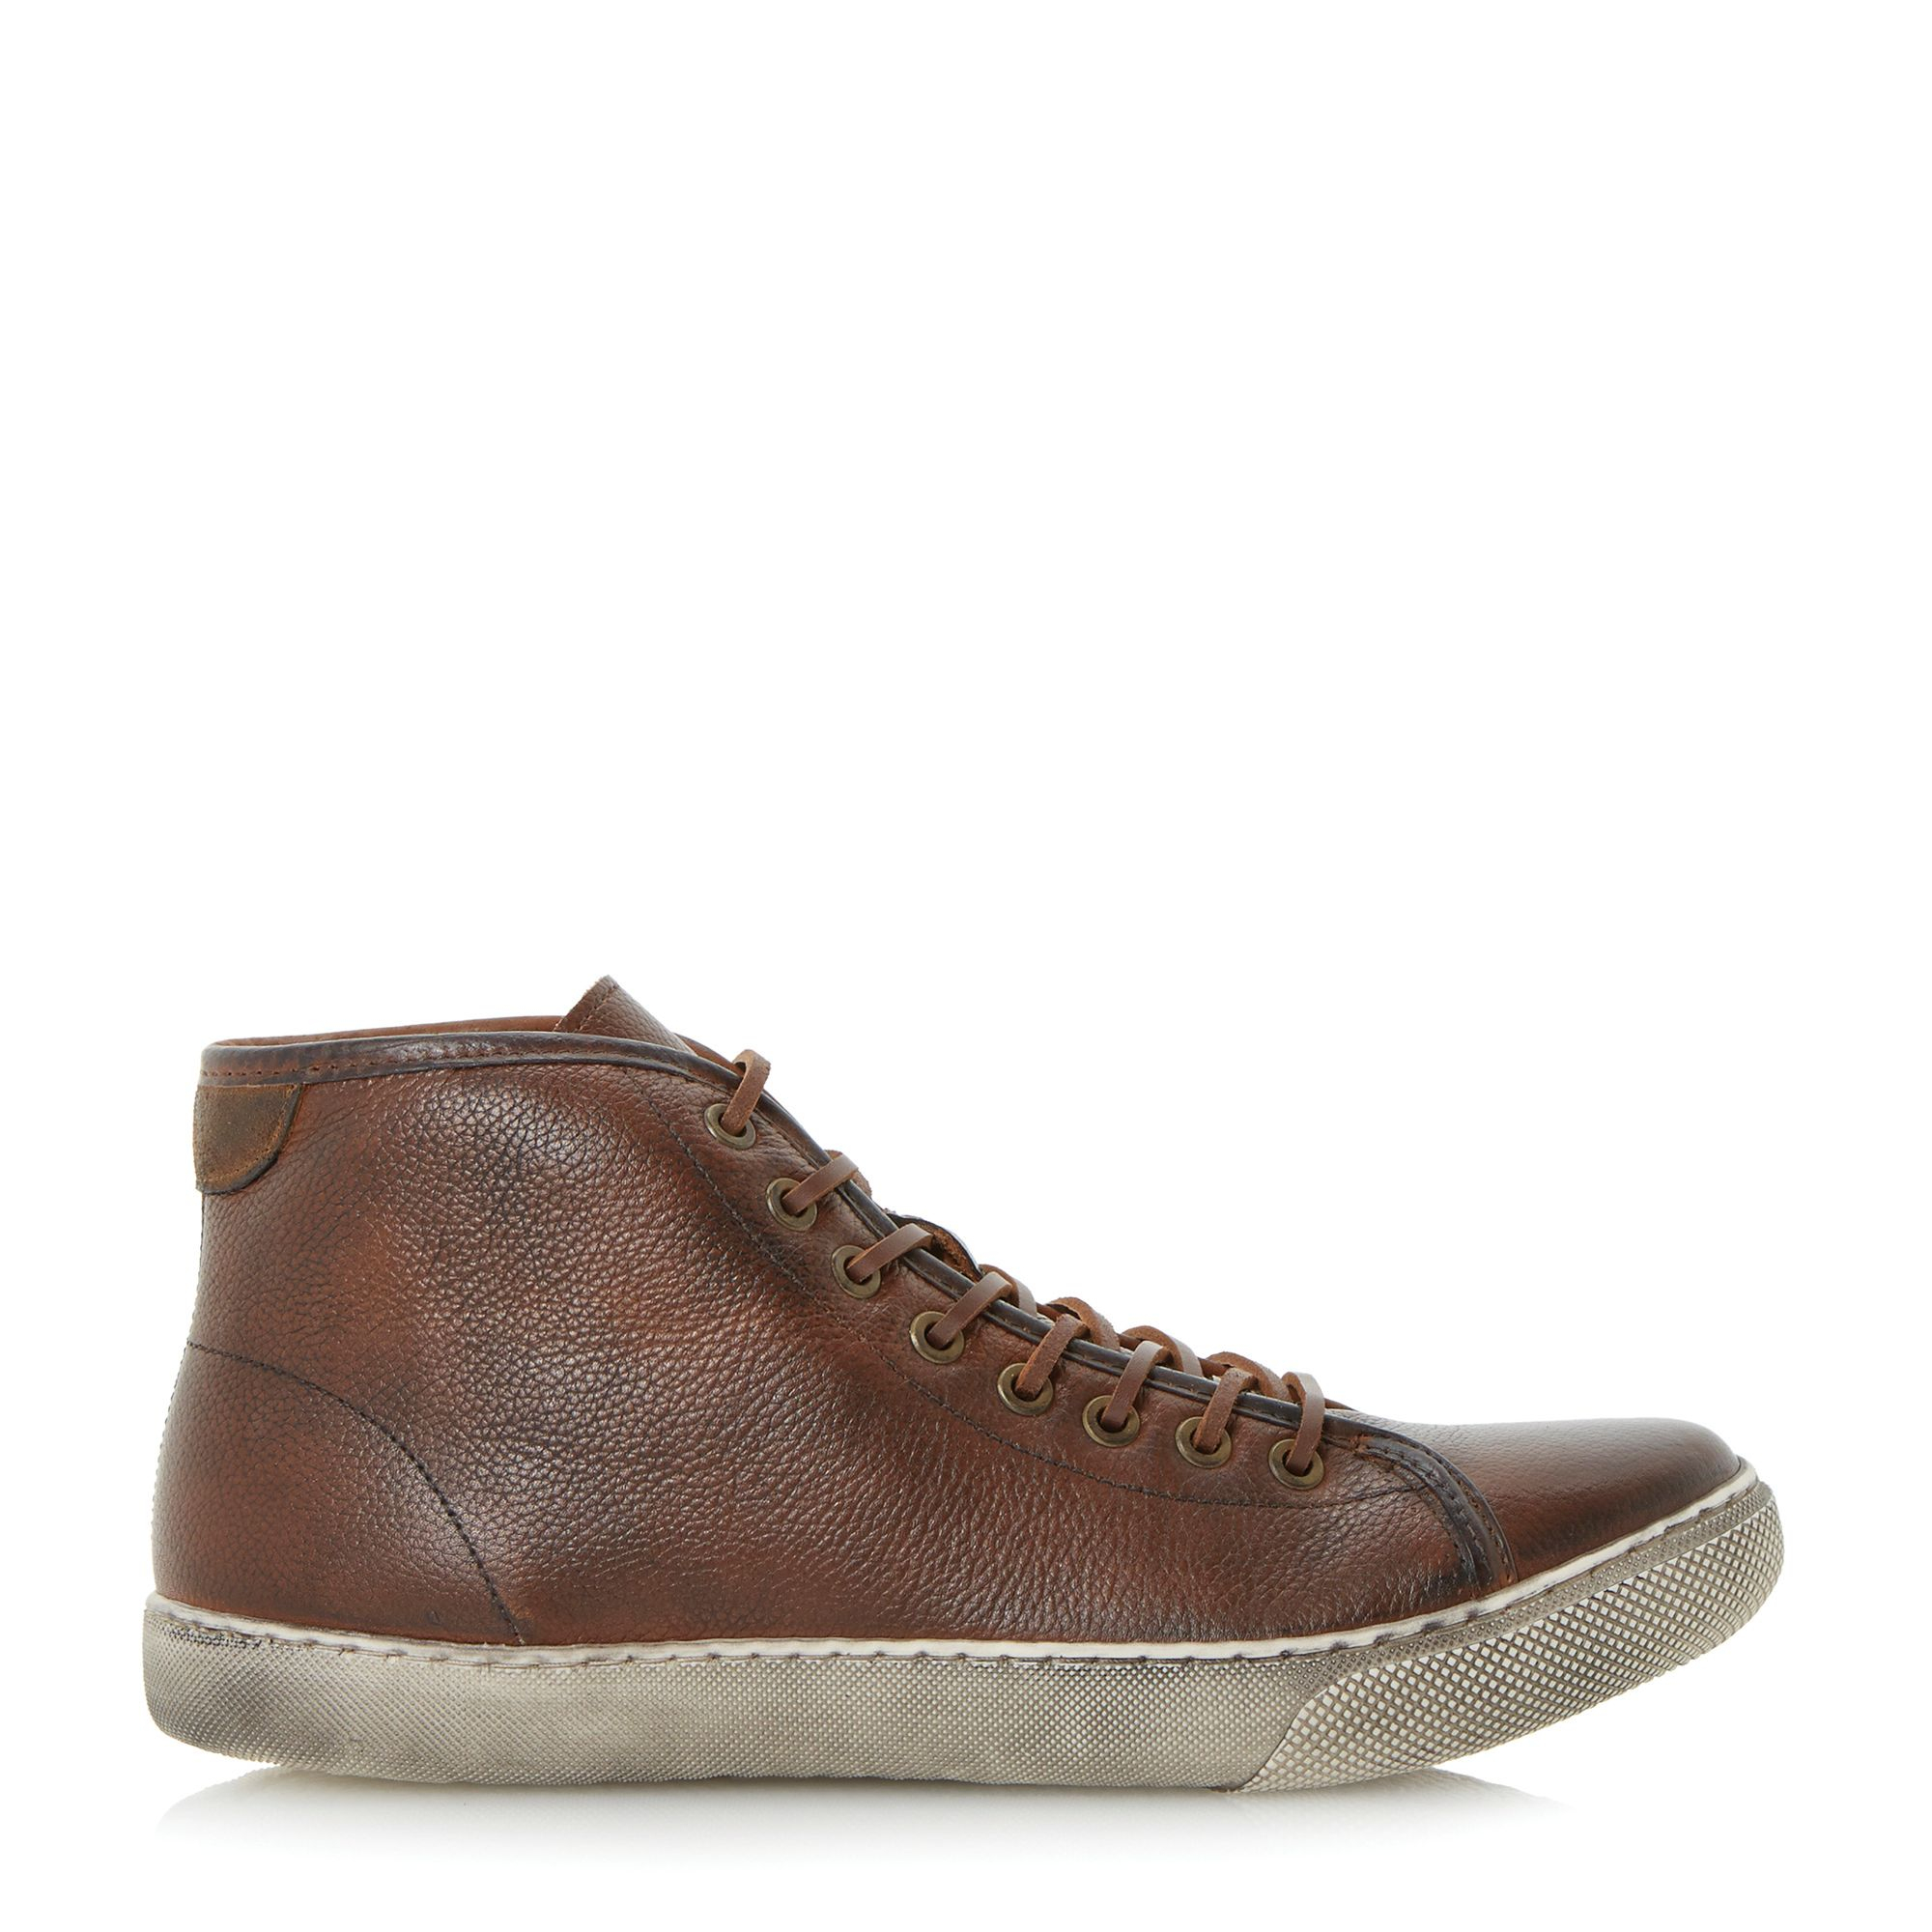 Dune Sweeper Lace Up Distressed Hi Top Trainers in Tan (Brown) for Men